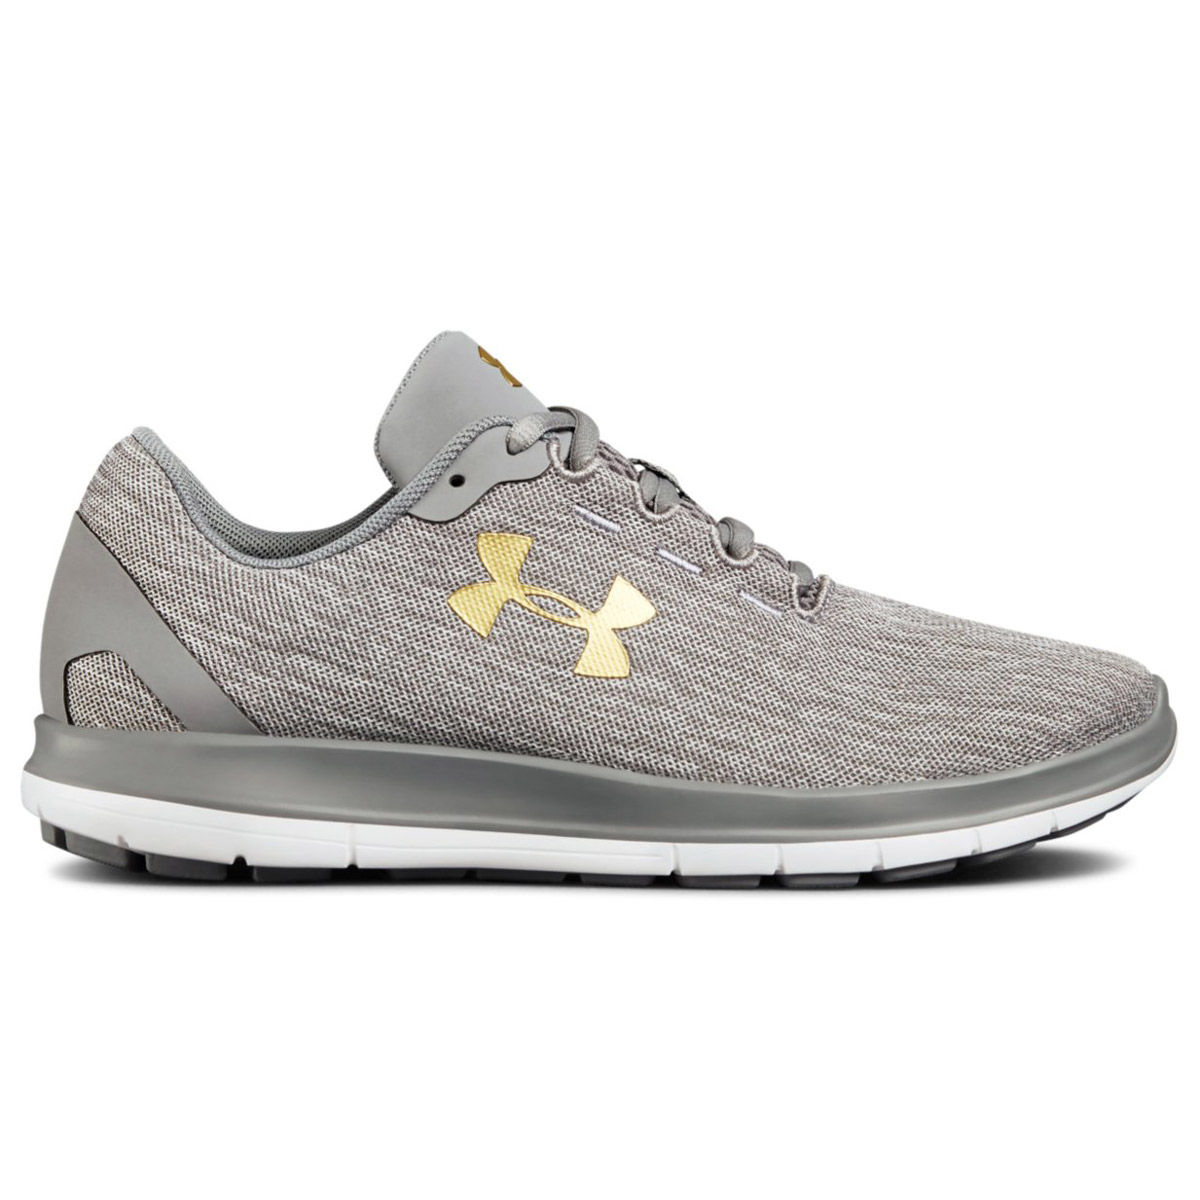 Under Armour Remix Womens Training Shoe